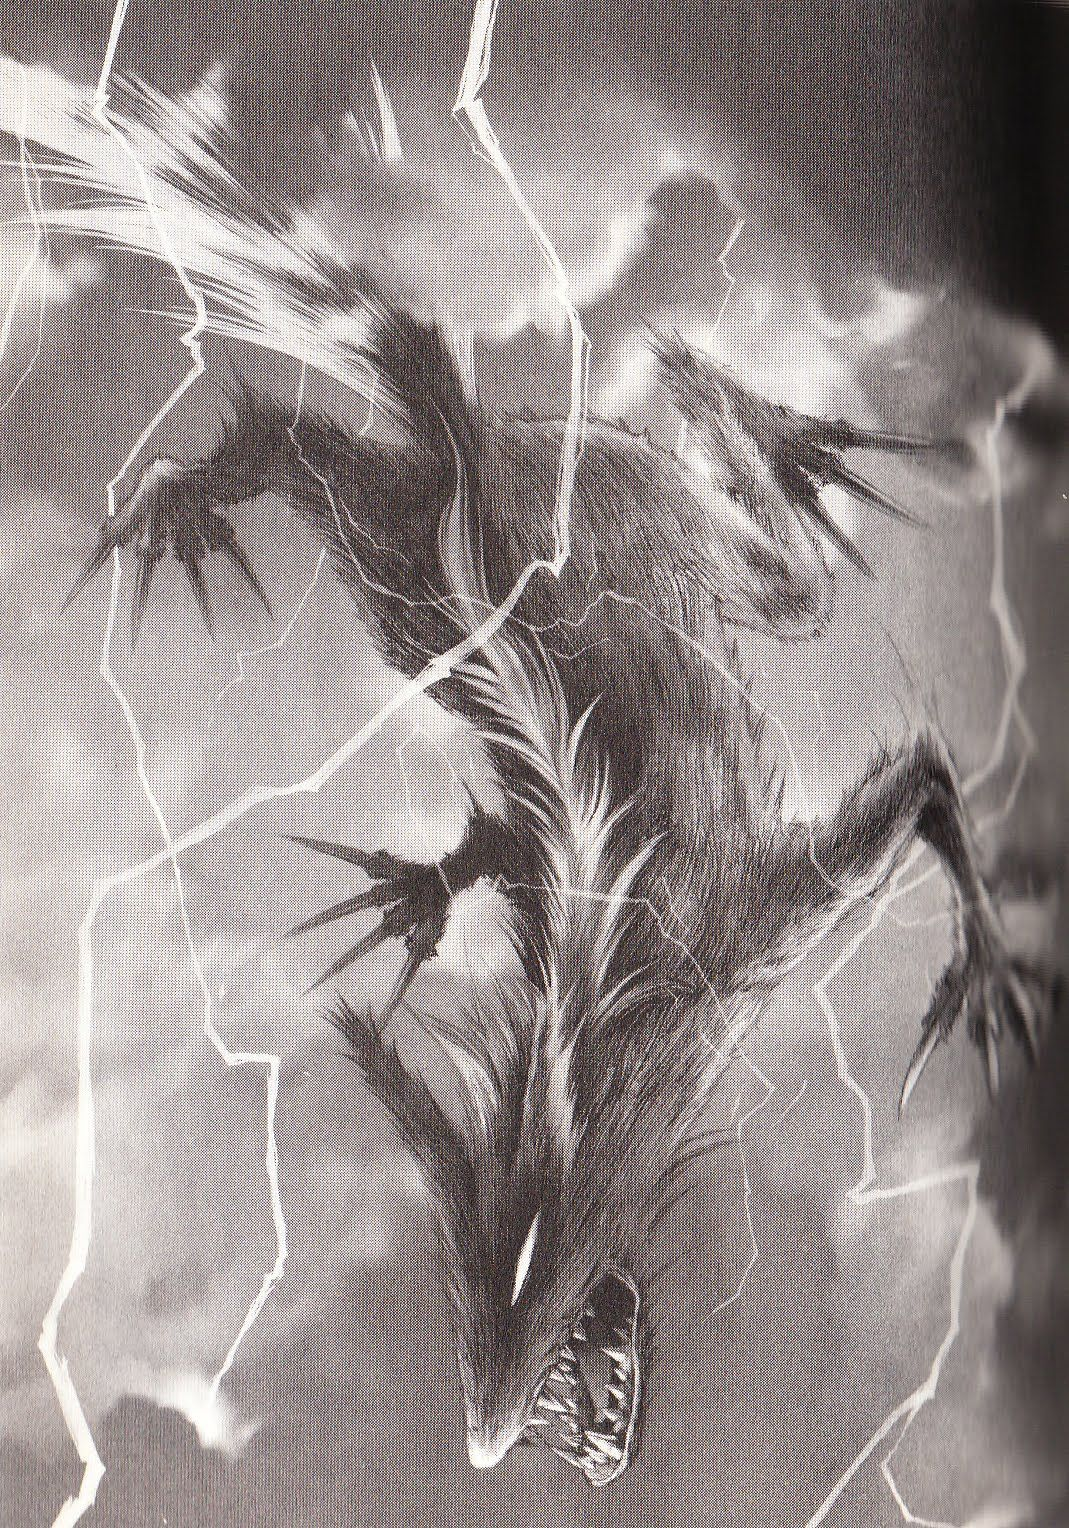 New Call For Art Submissions Raiju The Thunder Beast ɛ·ç£ Arte Mitologia Japon Long ago the raijū was one of the most well known and most feared supernatural creatures in japanese folklore. pinterest